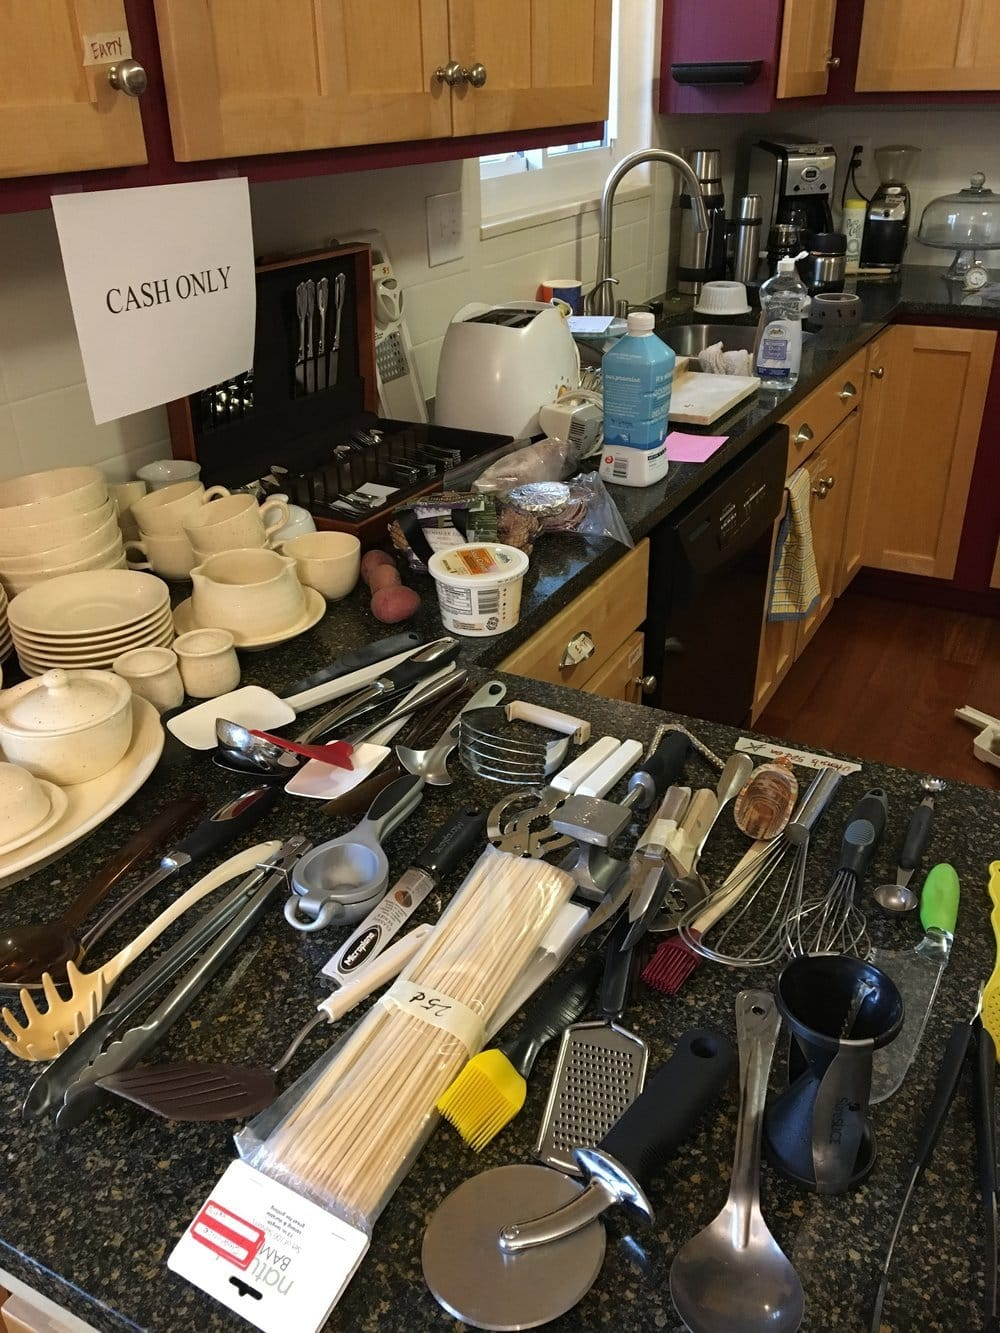 Kitchen with counters covered in utensils and dishes for sale